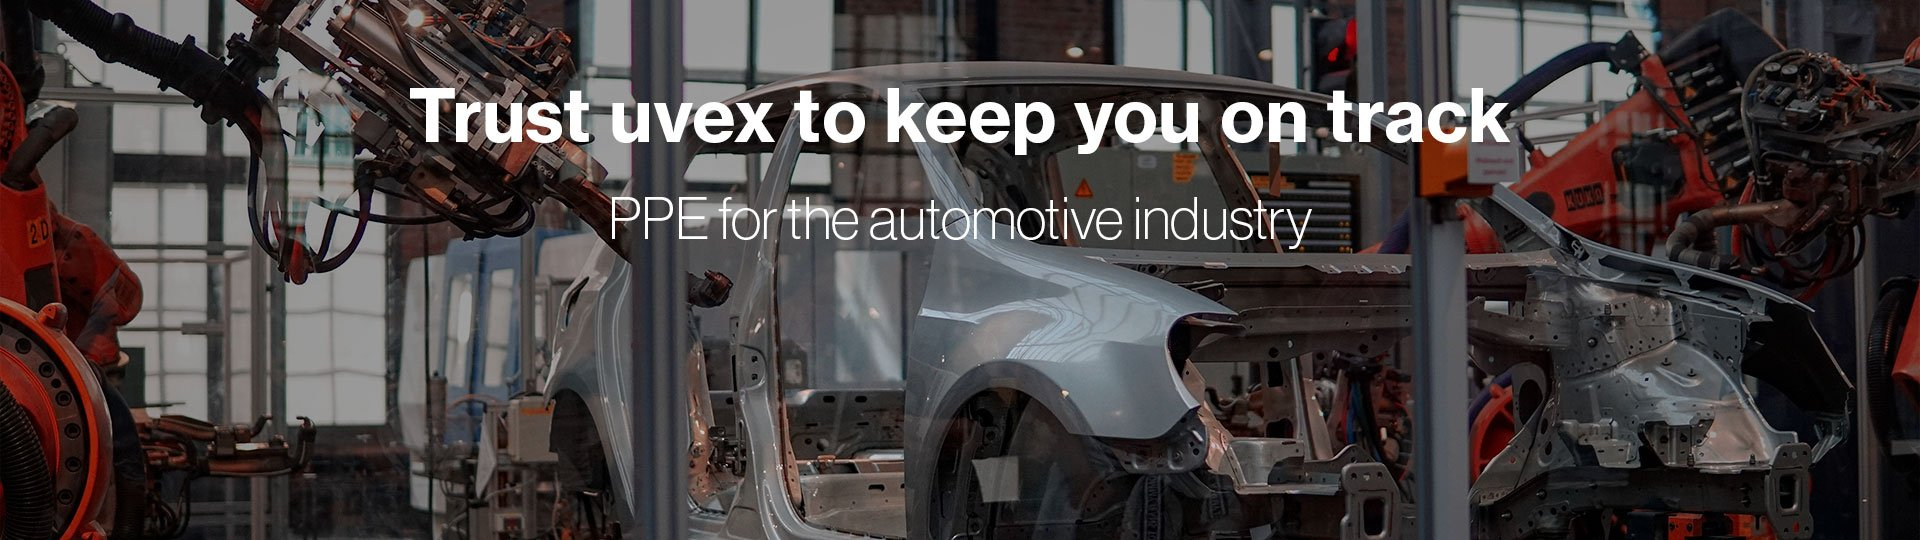 PPE perfectly suited to the automotive industry